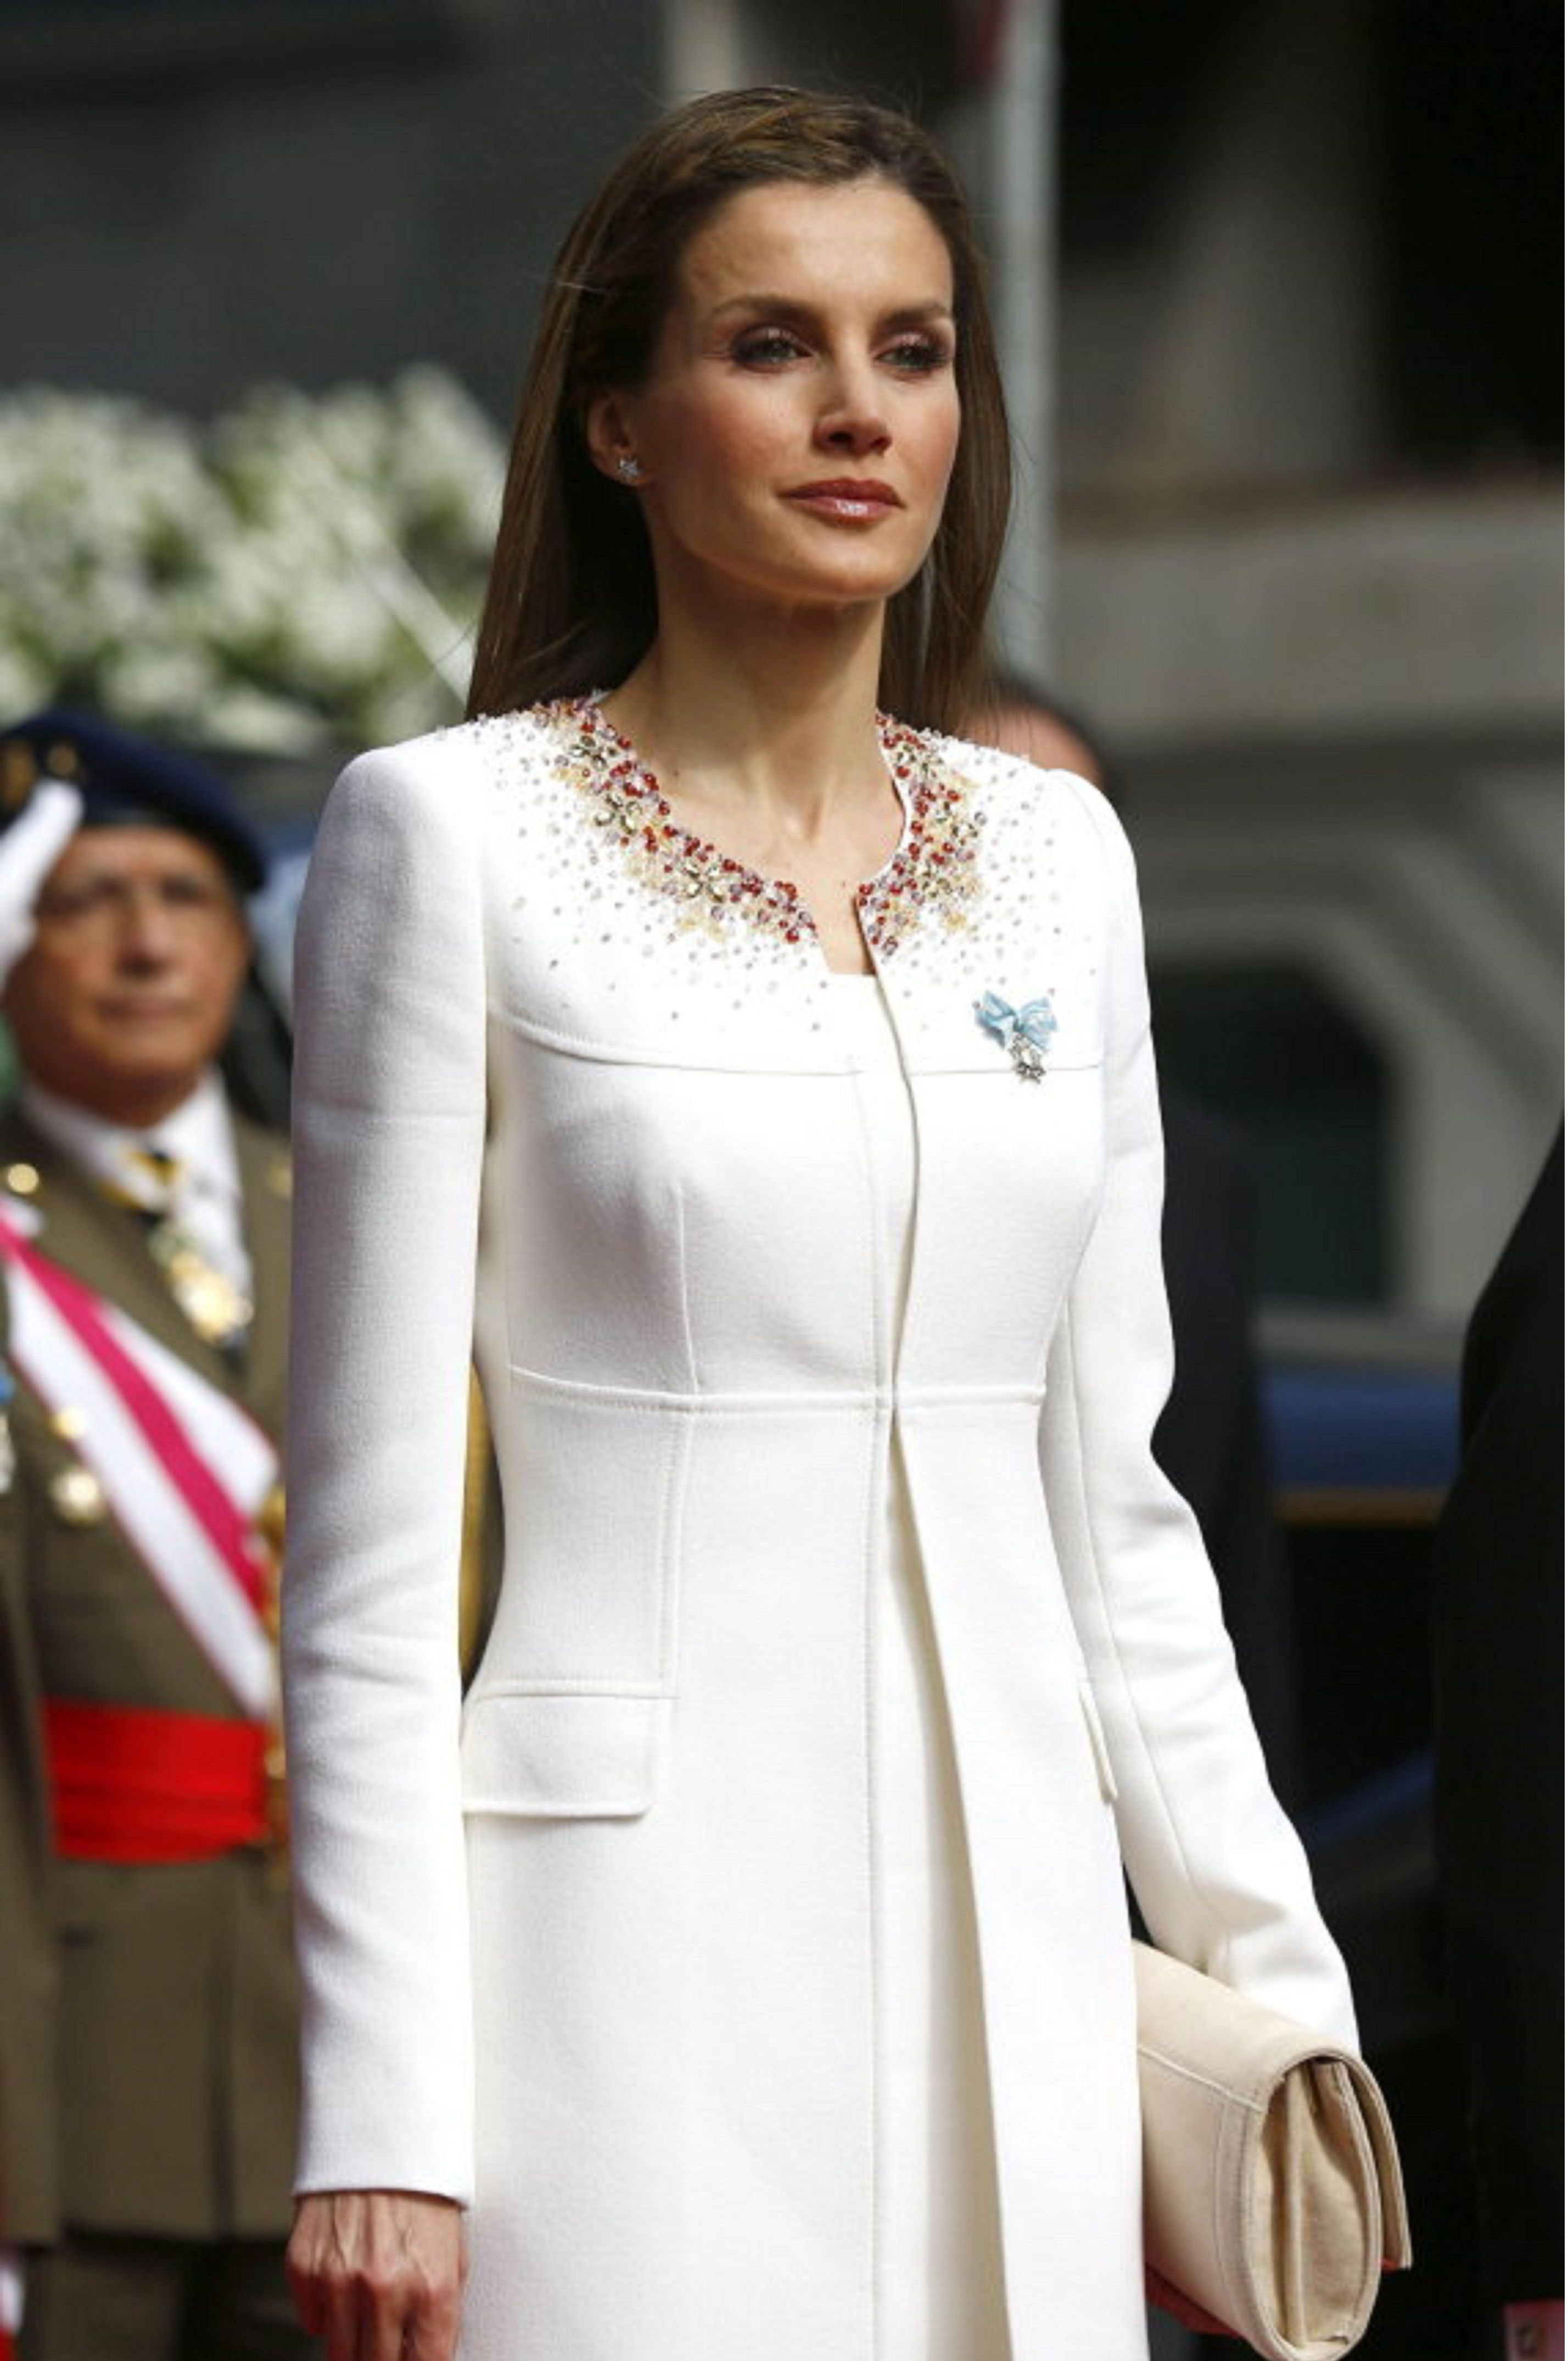 The current Queen of Spain, today in the proclamation of King Felipe VI of Spain. White dress by Spanish designer Felipe Varela